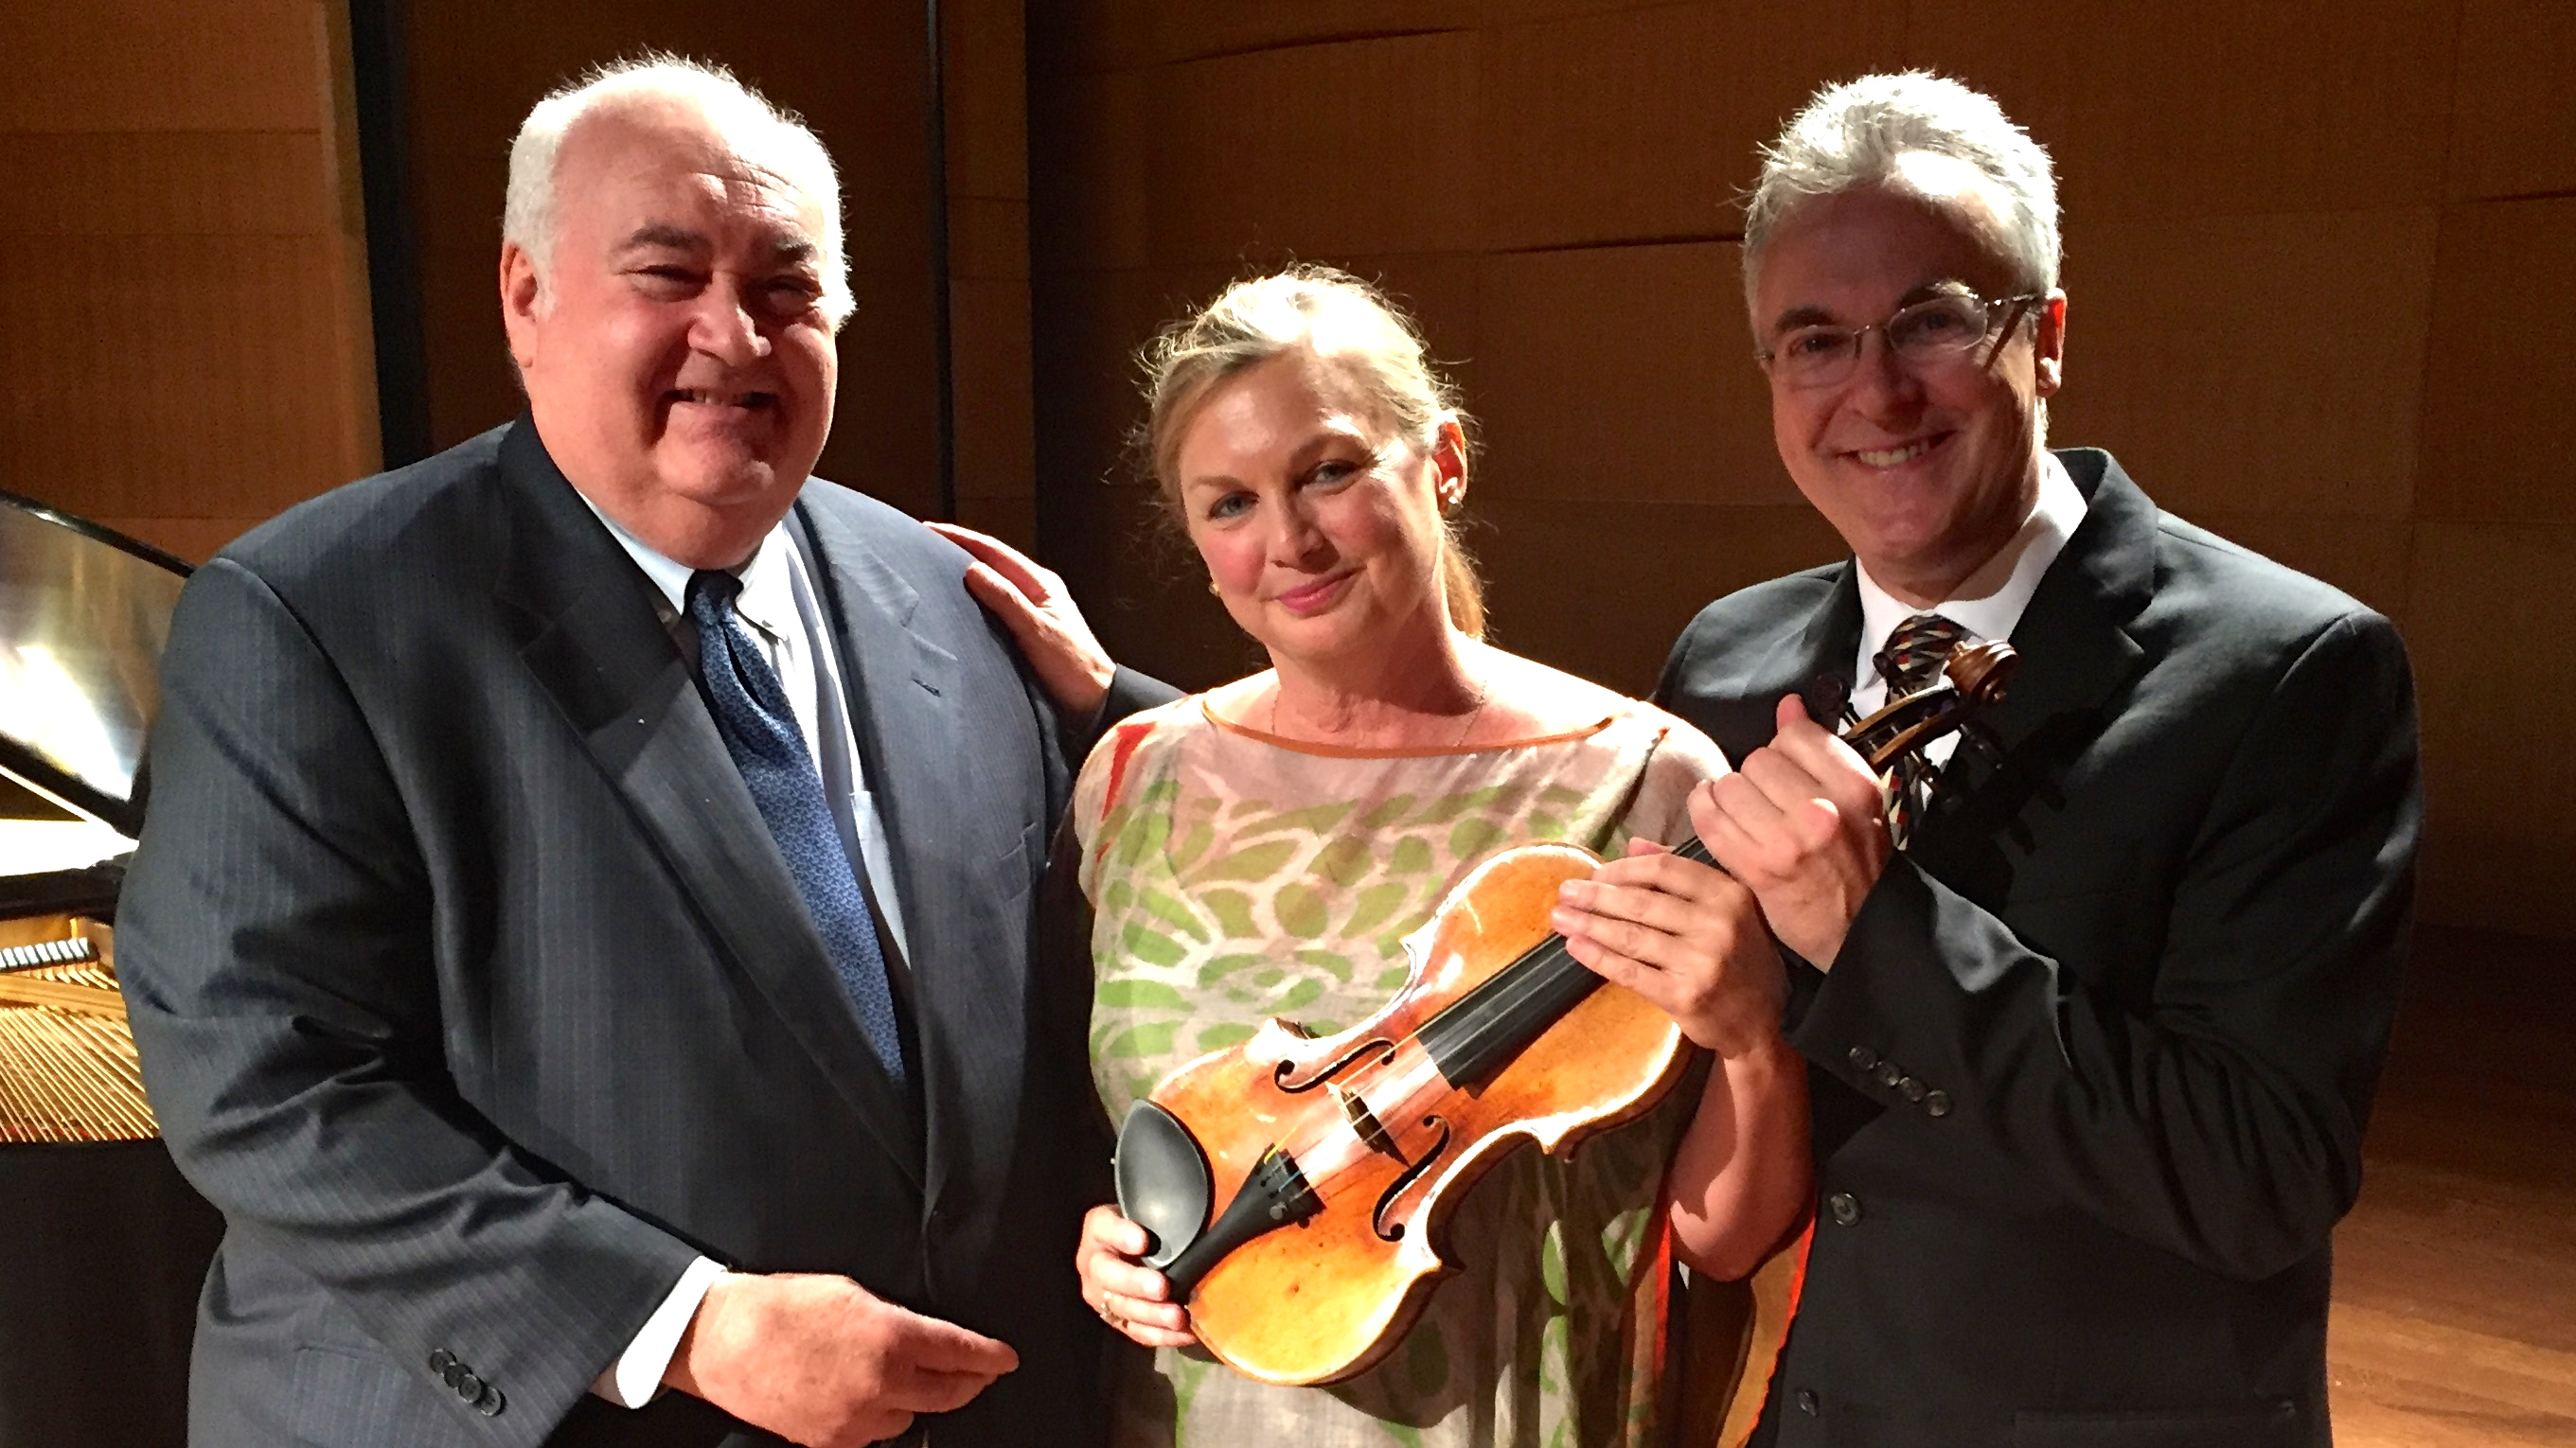 Happy 300th Birthday to the 'Milstein' Stradivarius!